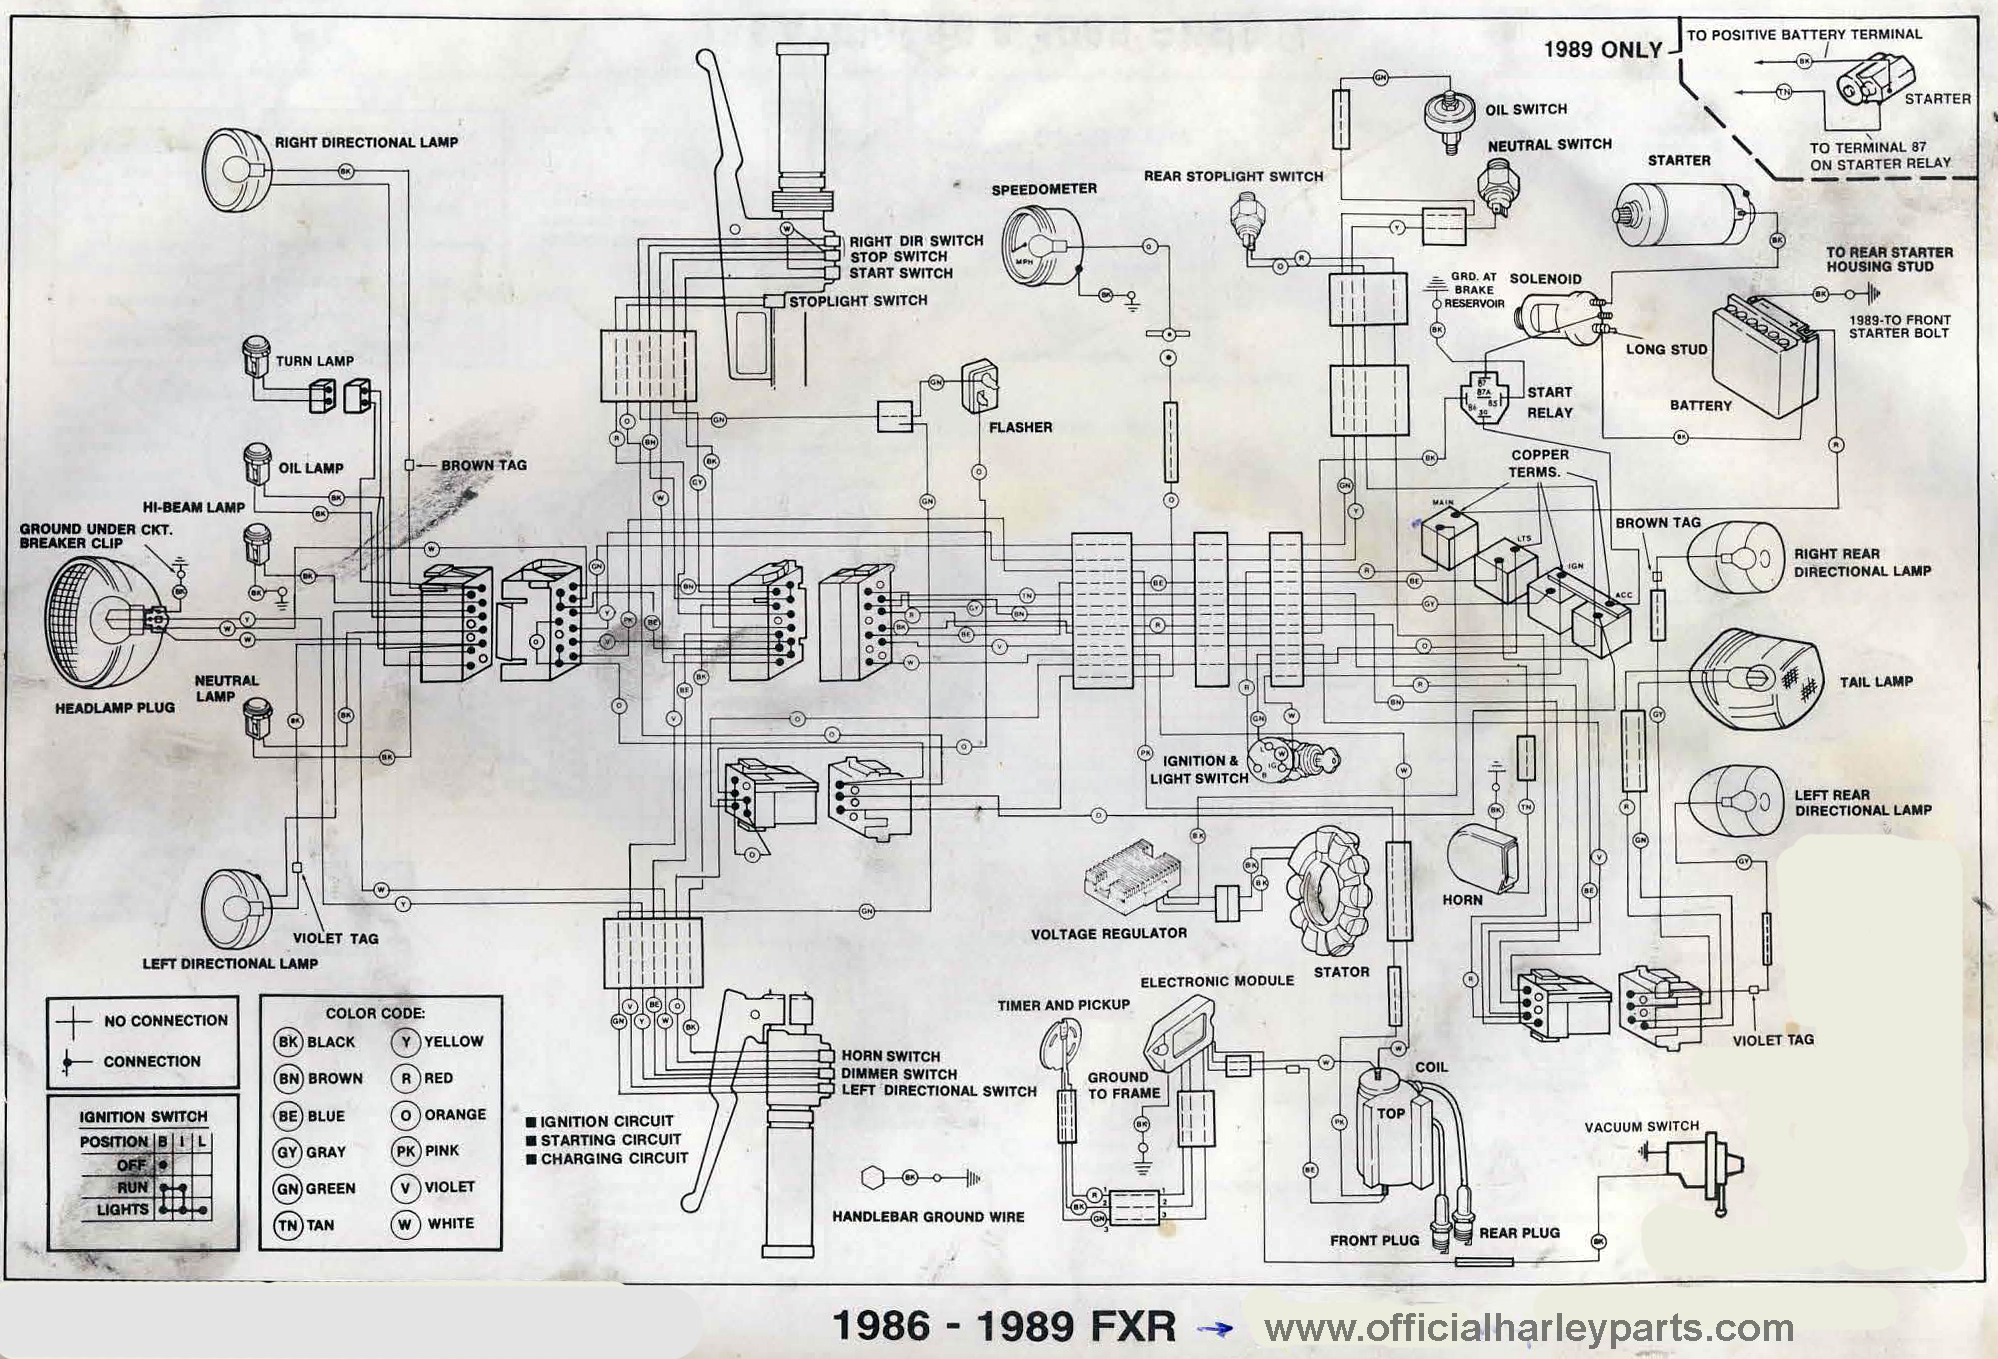 1993 Fxr Wiring Diagram